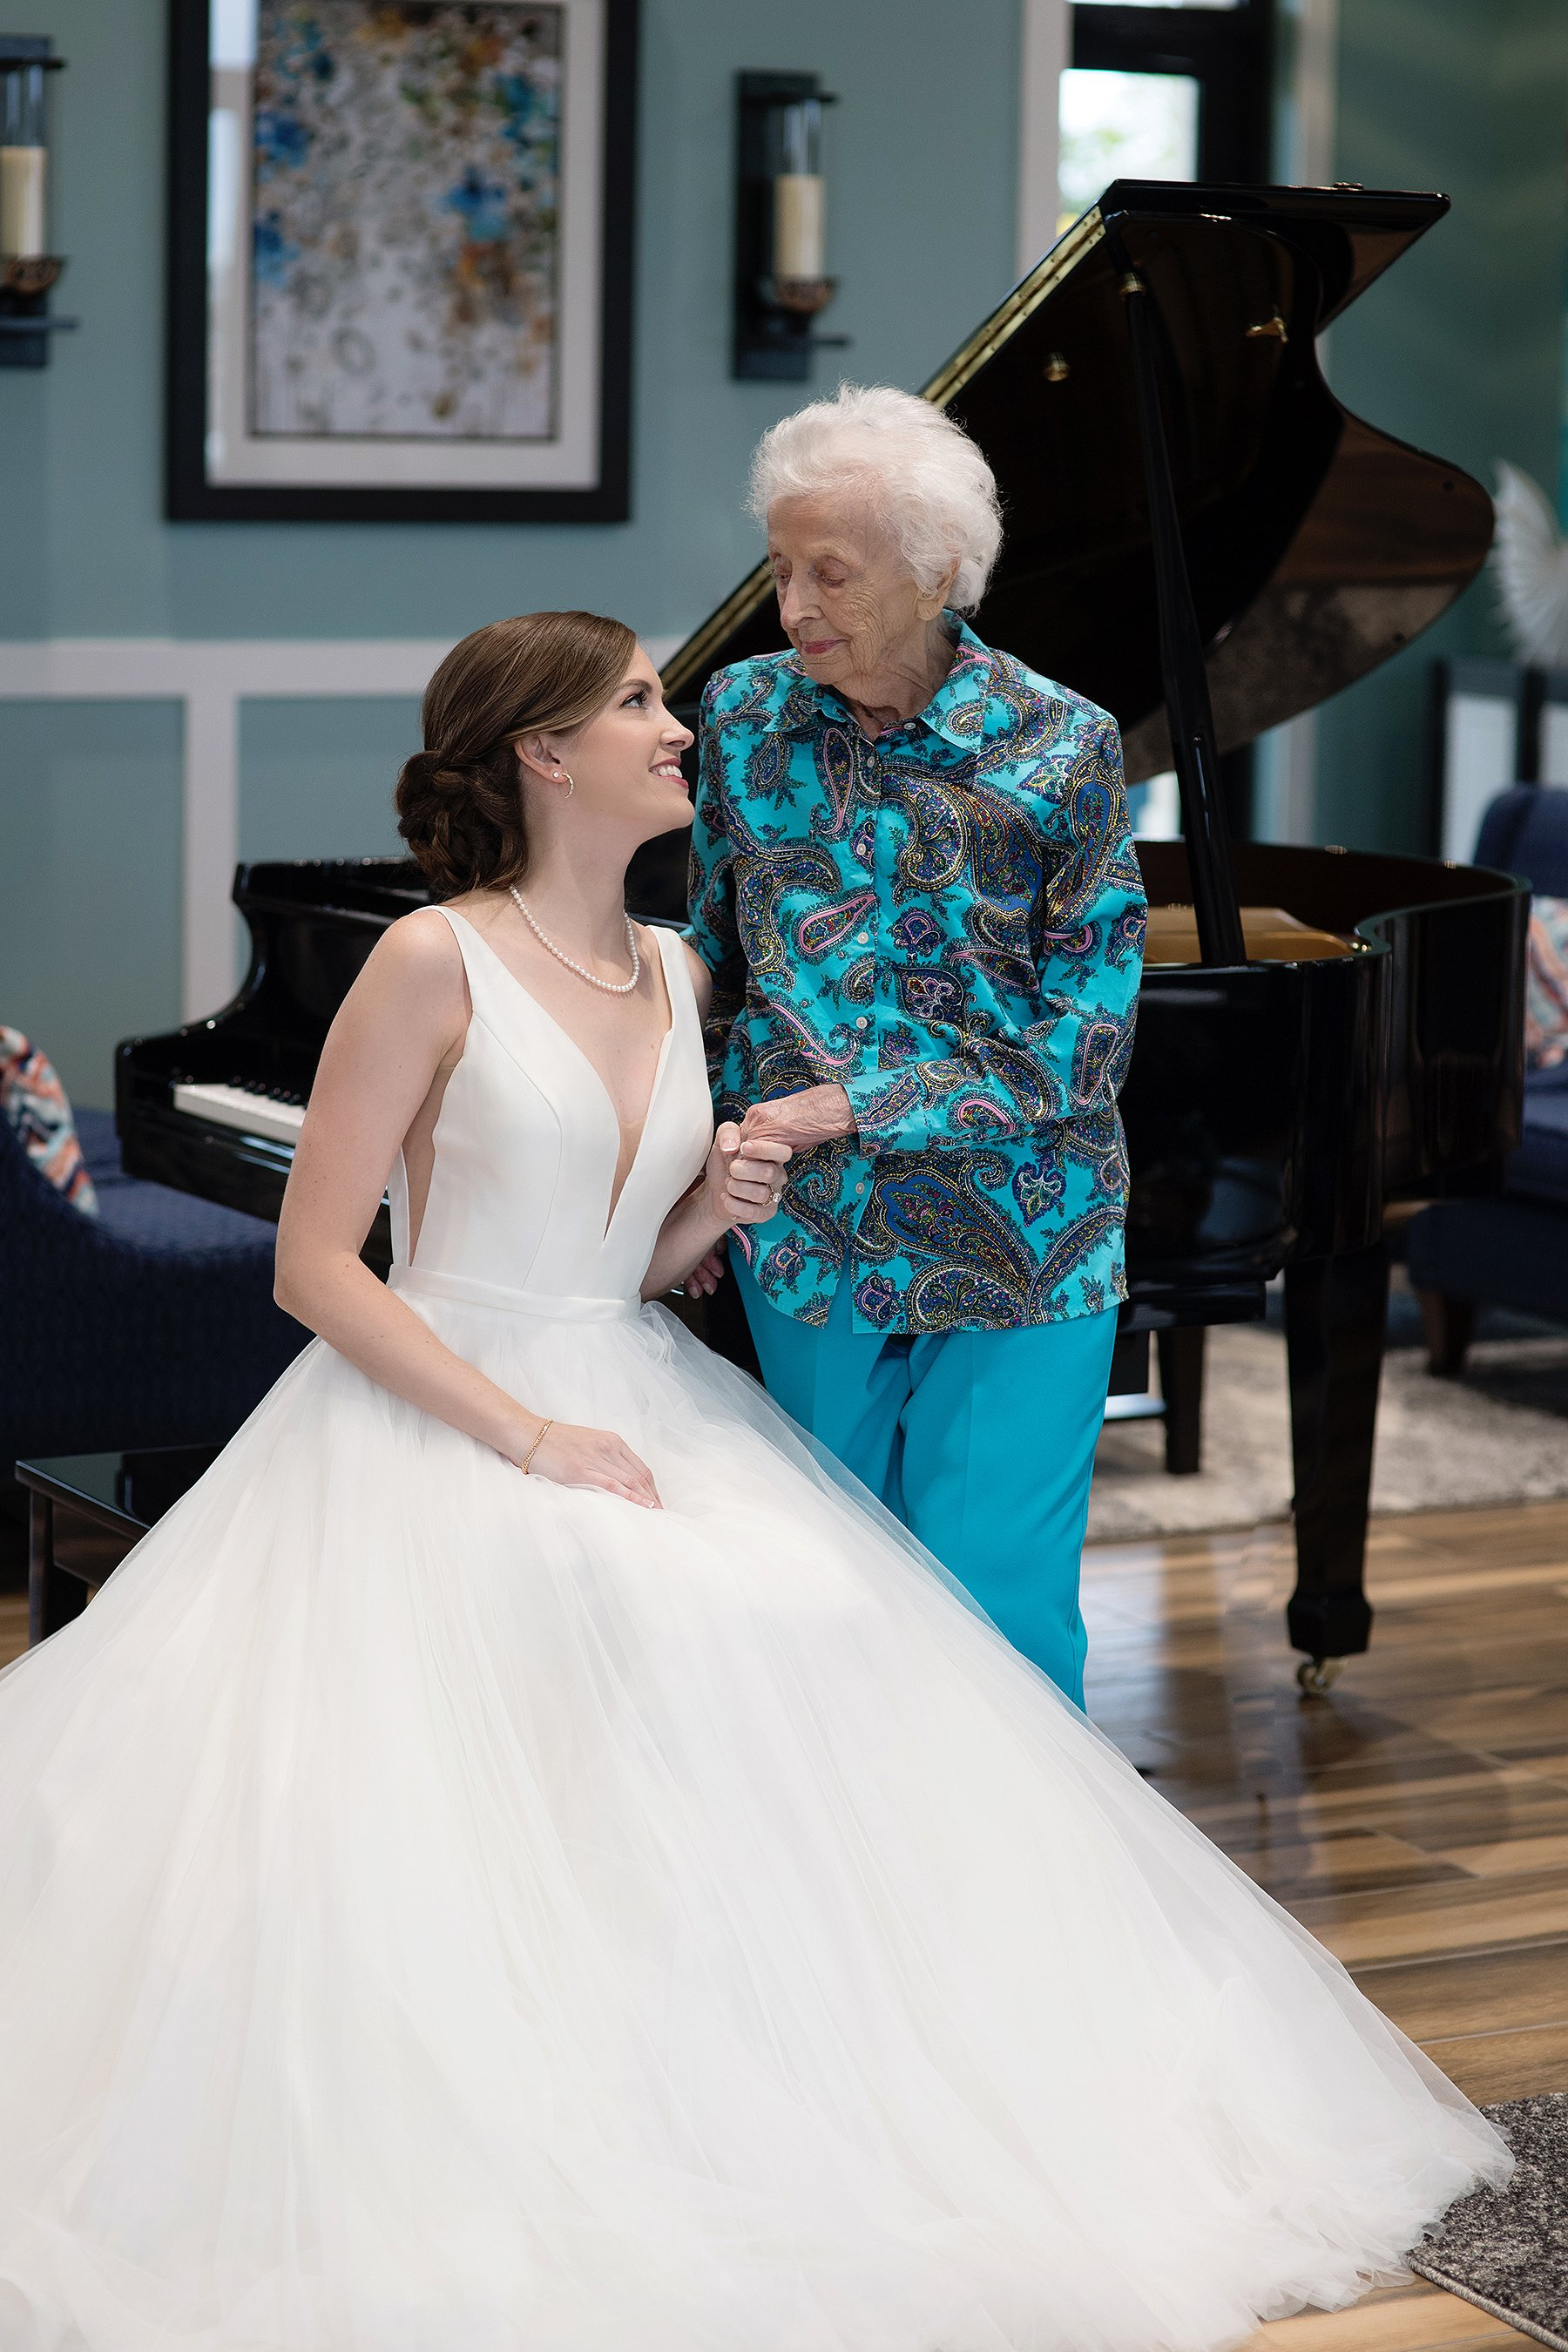 Tara and her grandmother in photoshoot